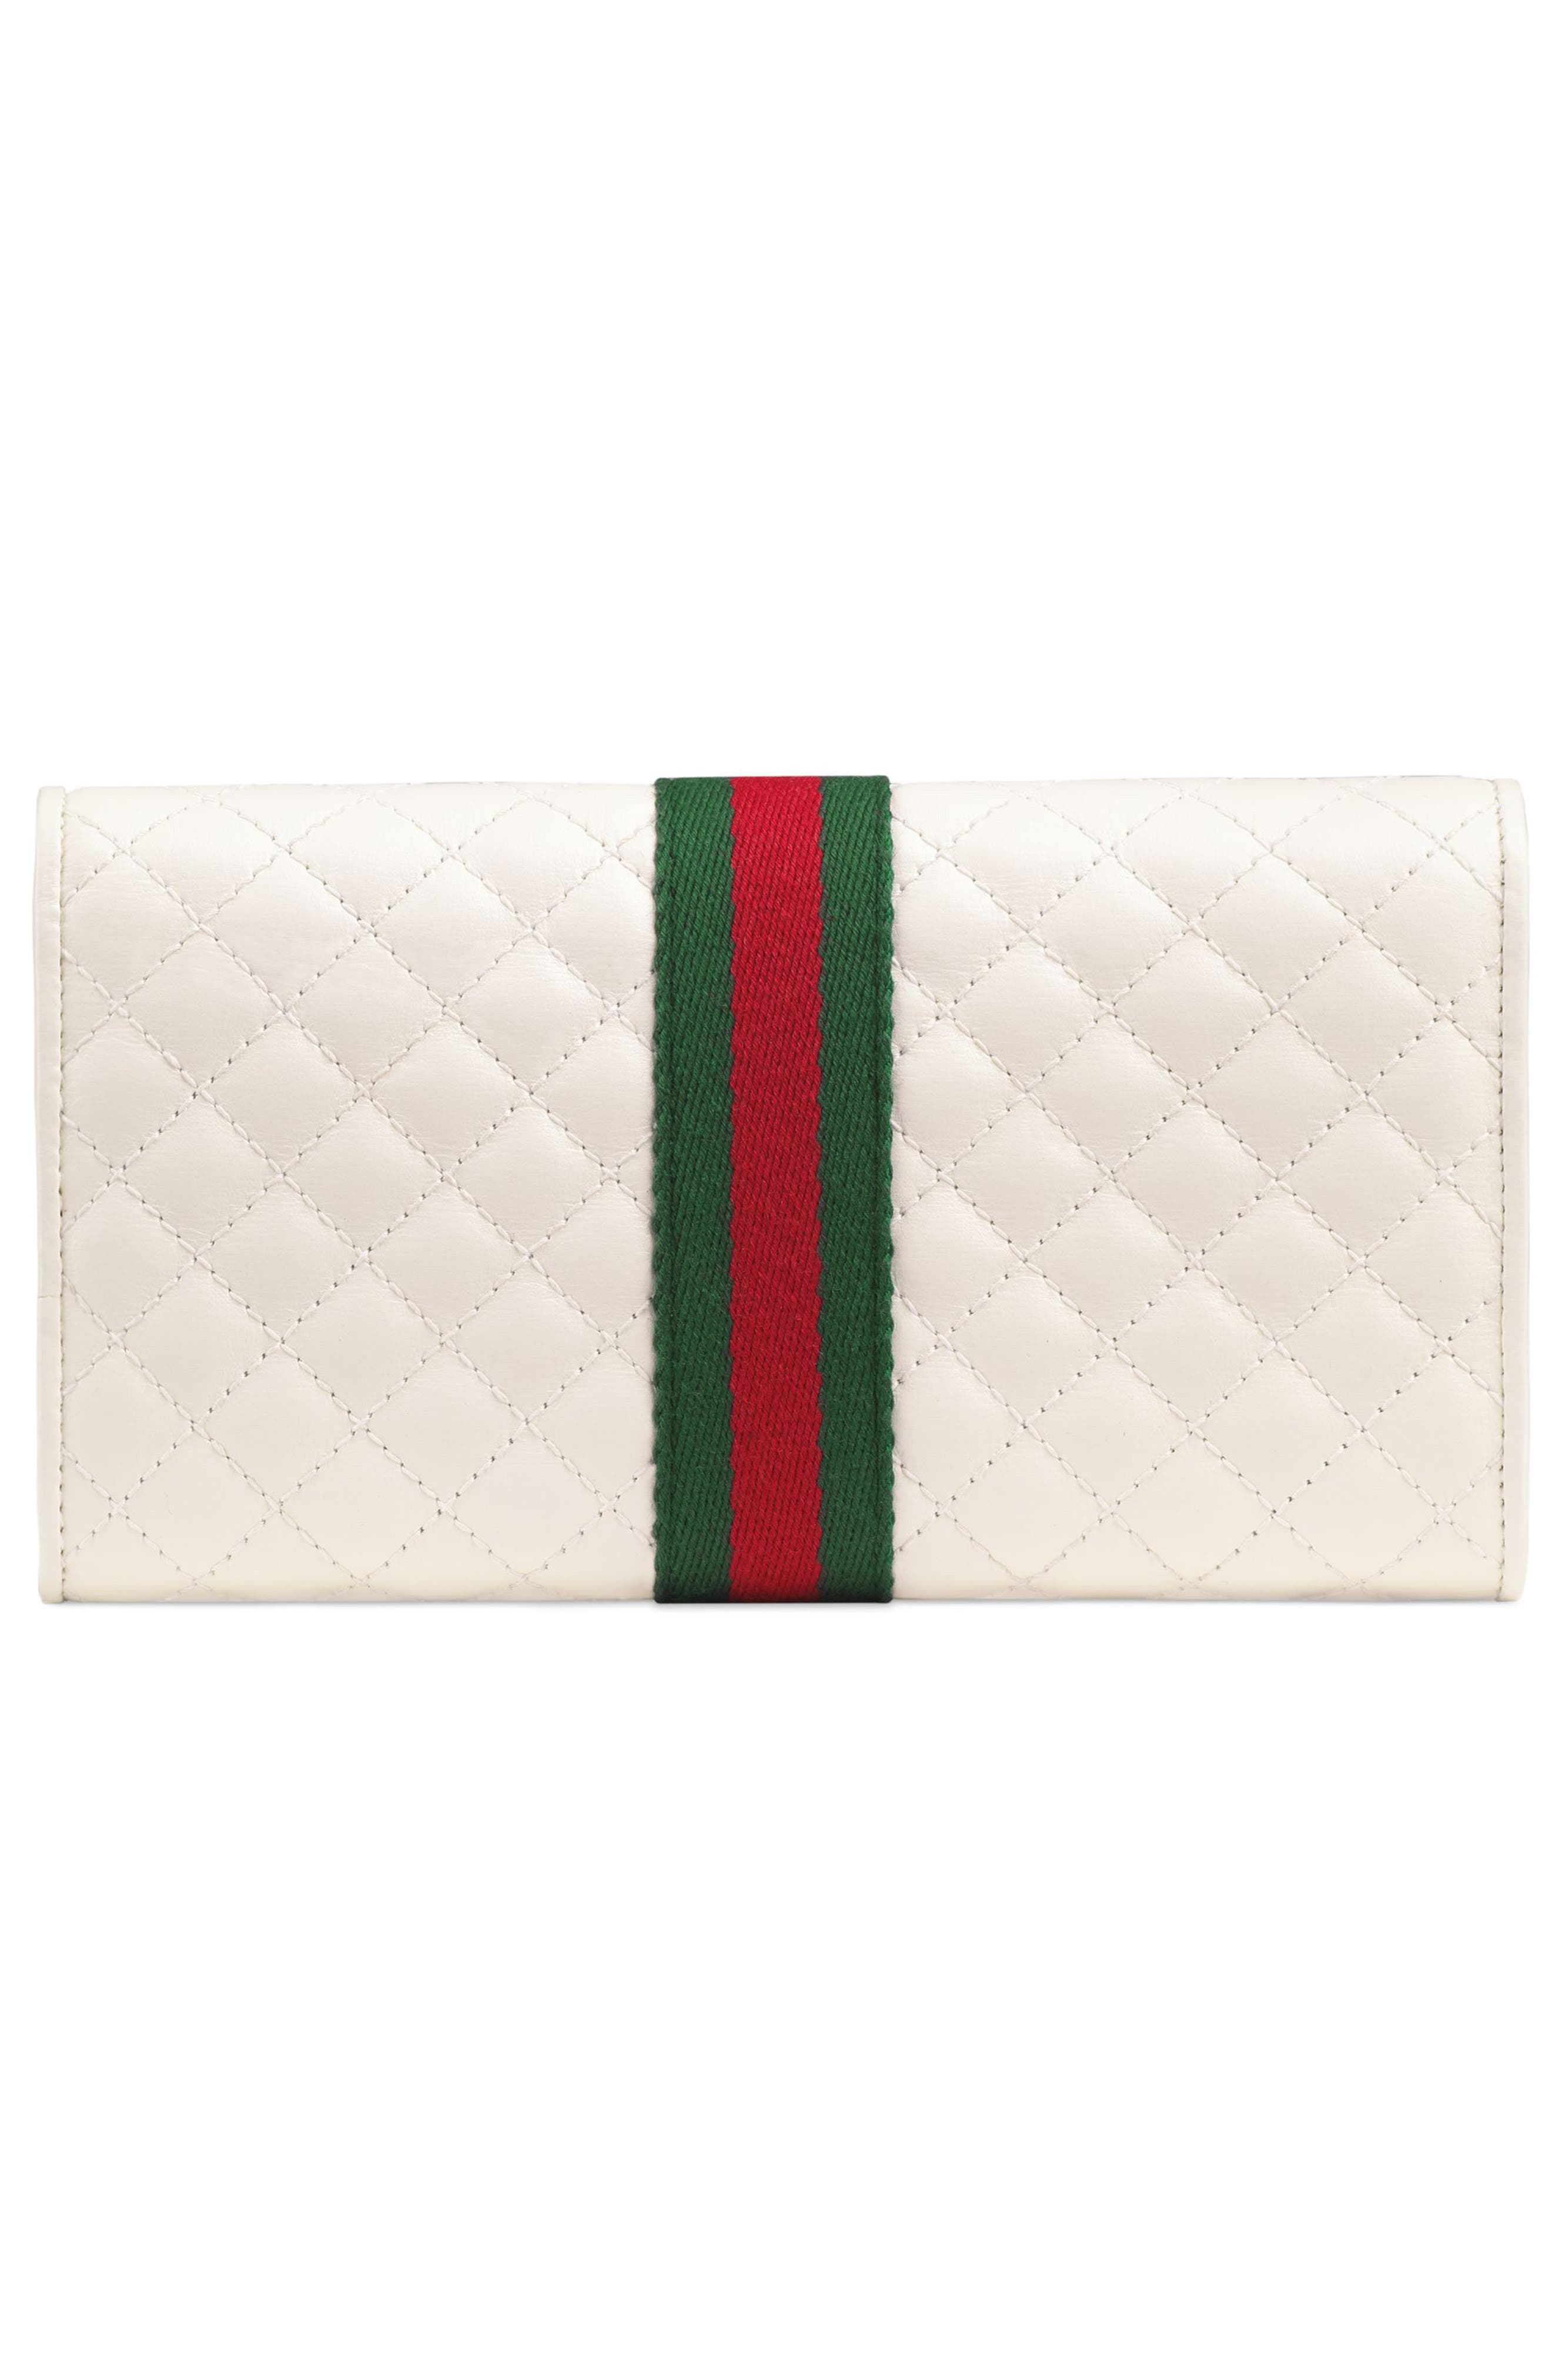 Quilted Leather Continental Wallet,                             Alternate thumbnail 3, color,                             OFF WHITE/ VERT/ RED